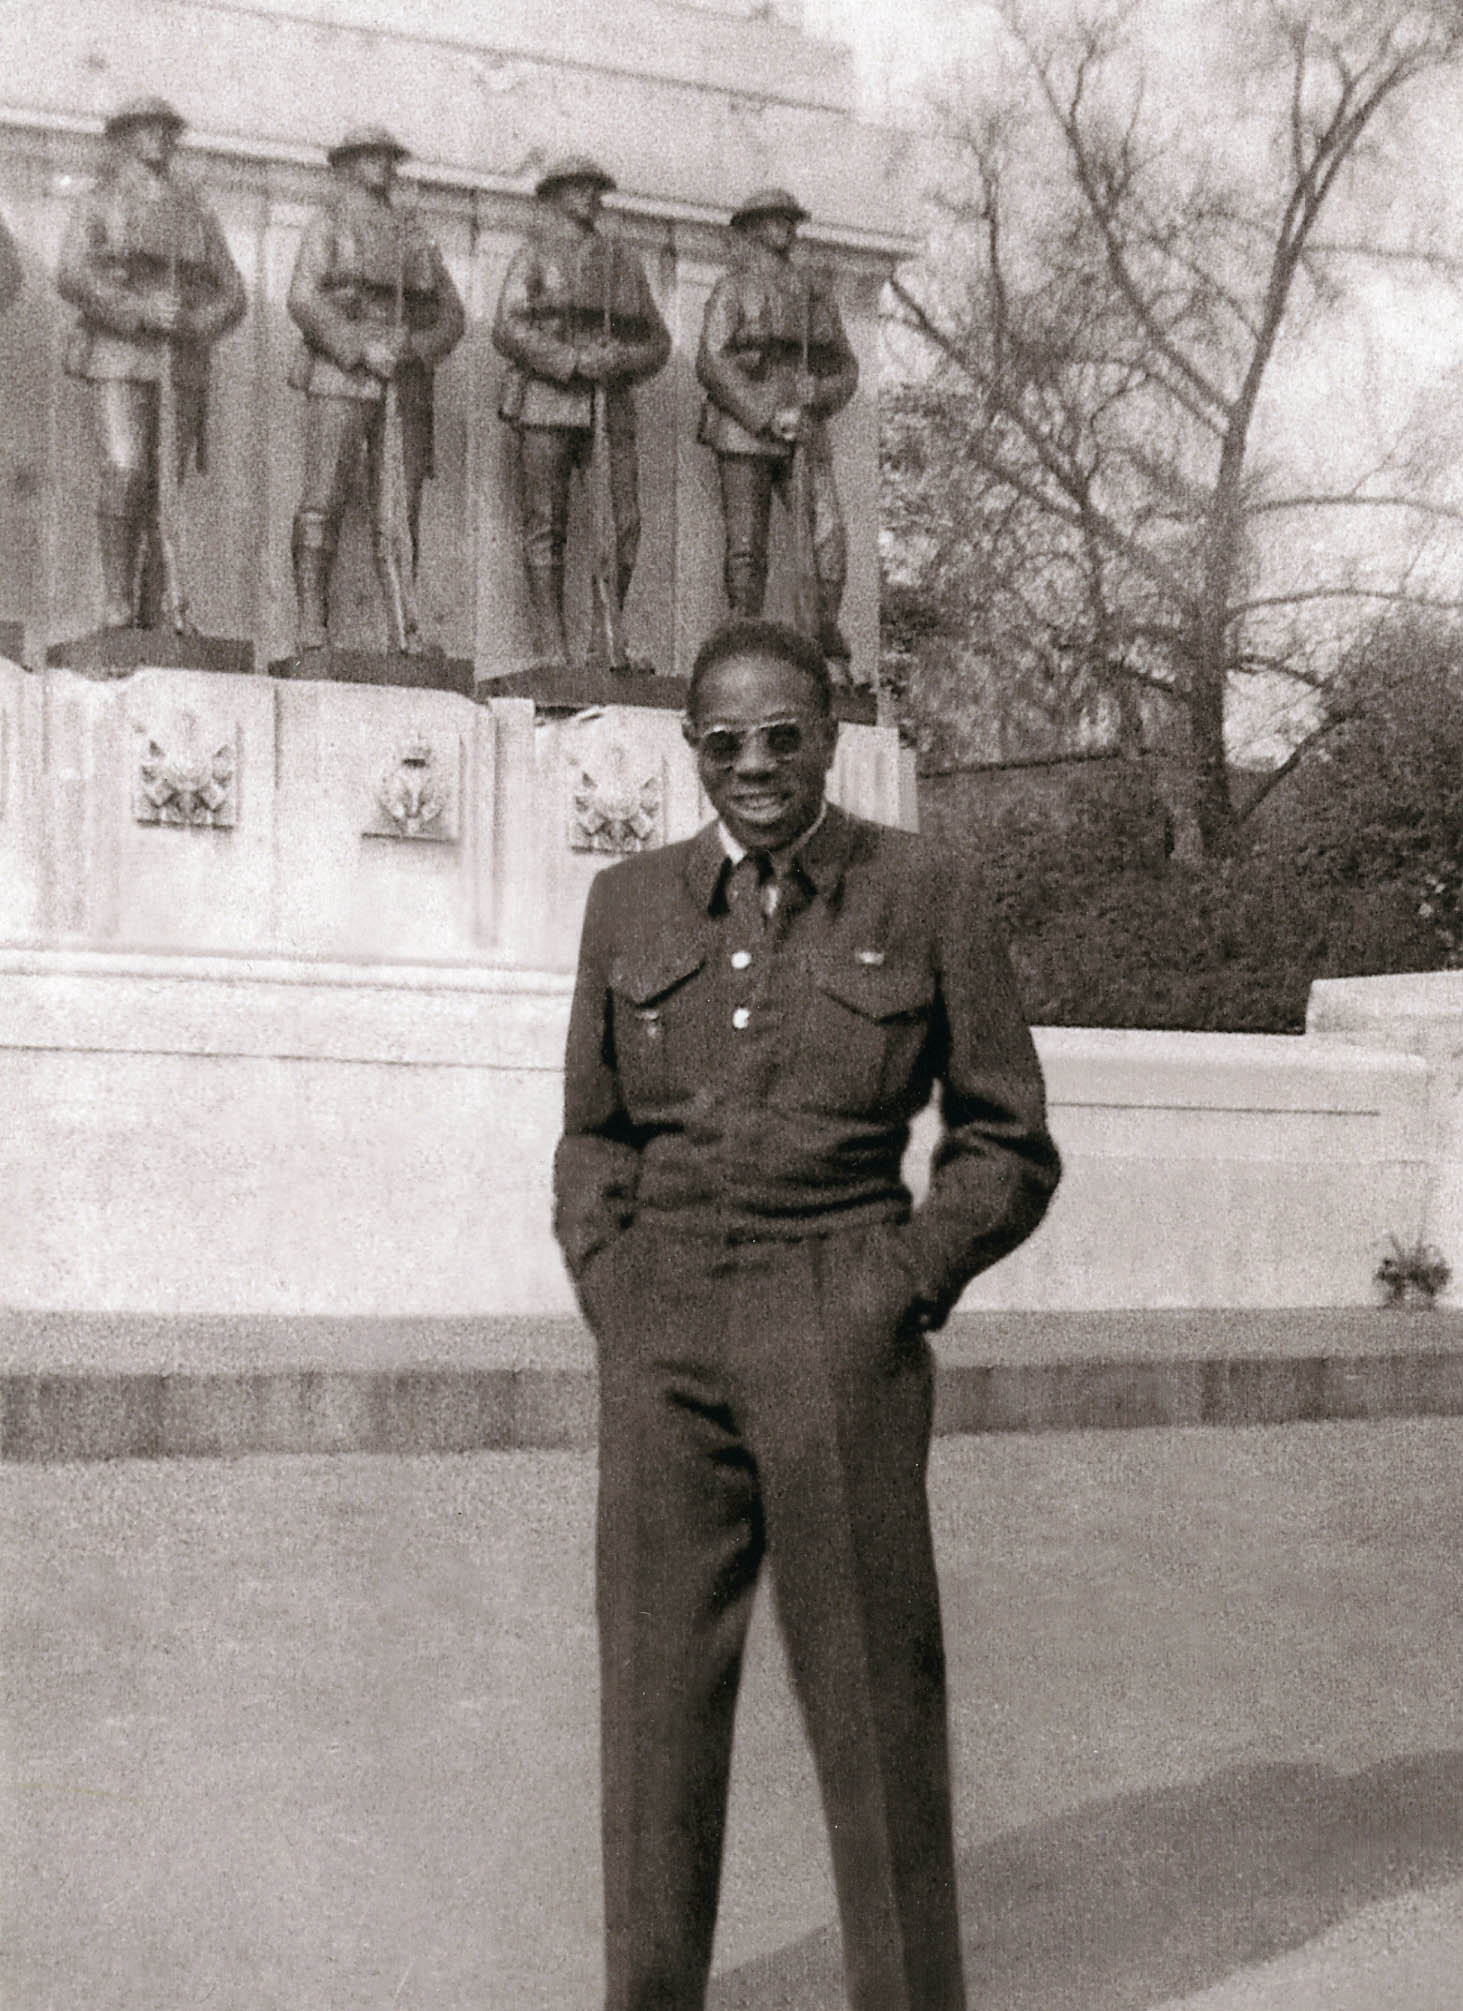 A vintage black and white photo of a man in a military uniform standing in front of a commemorative monument